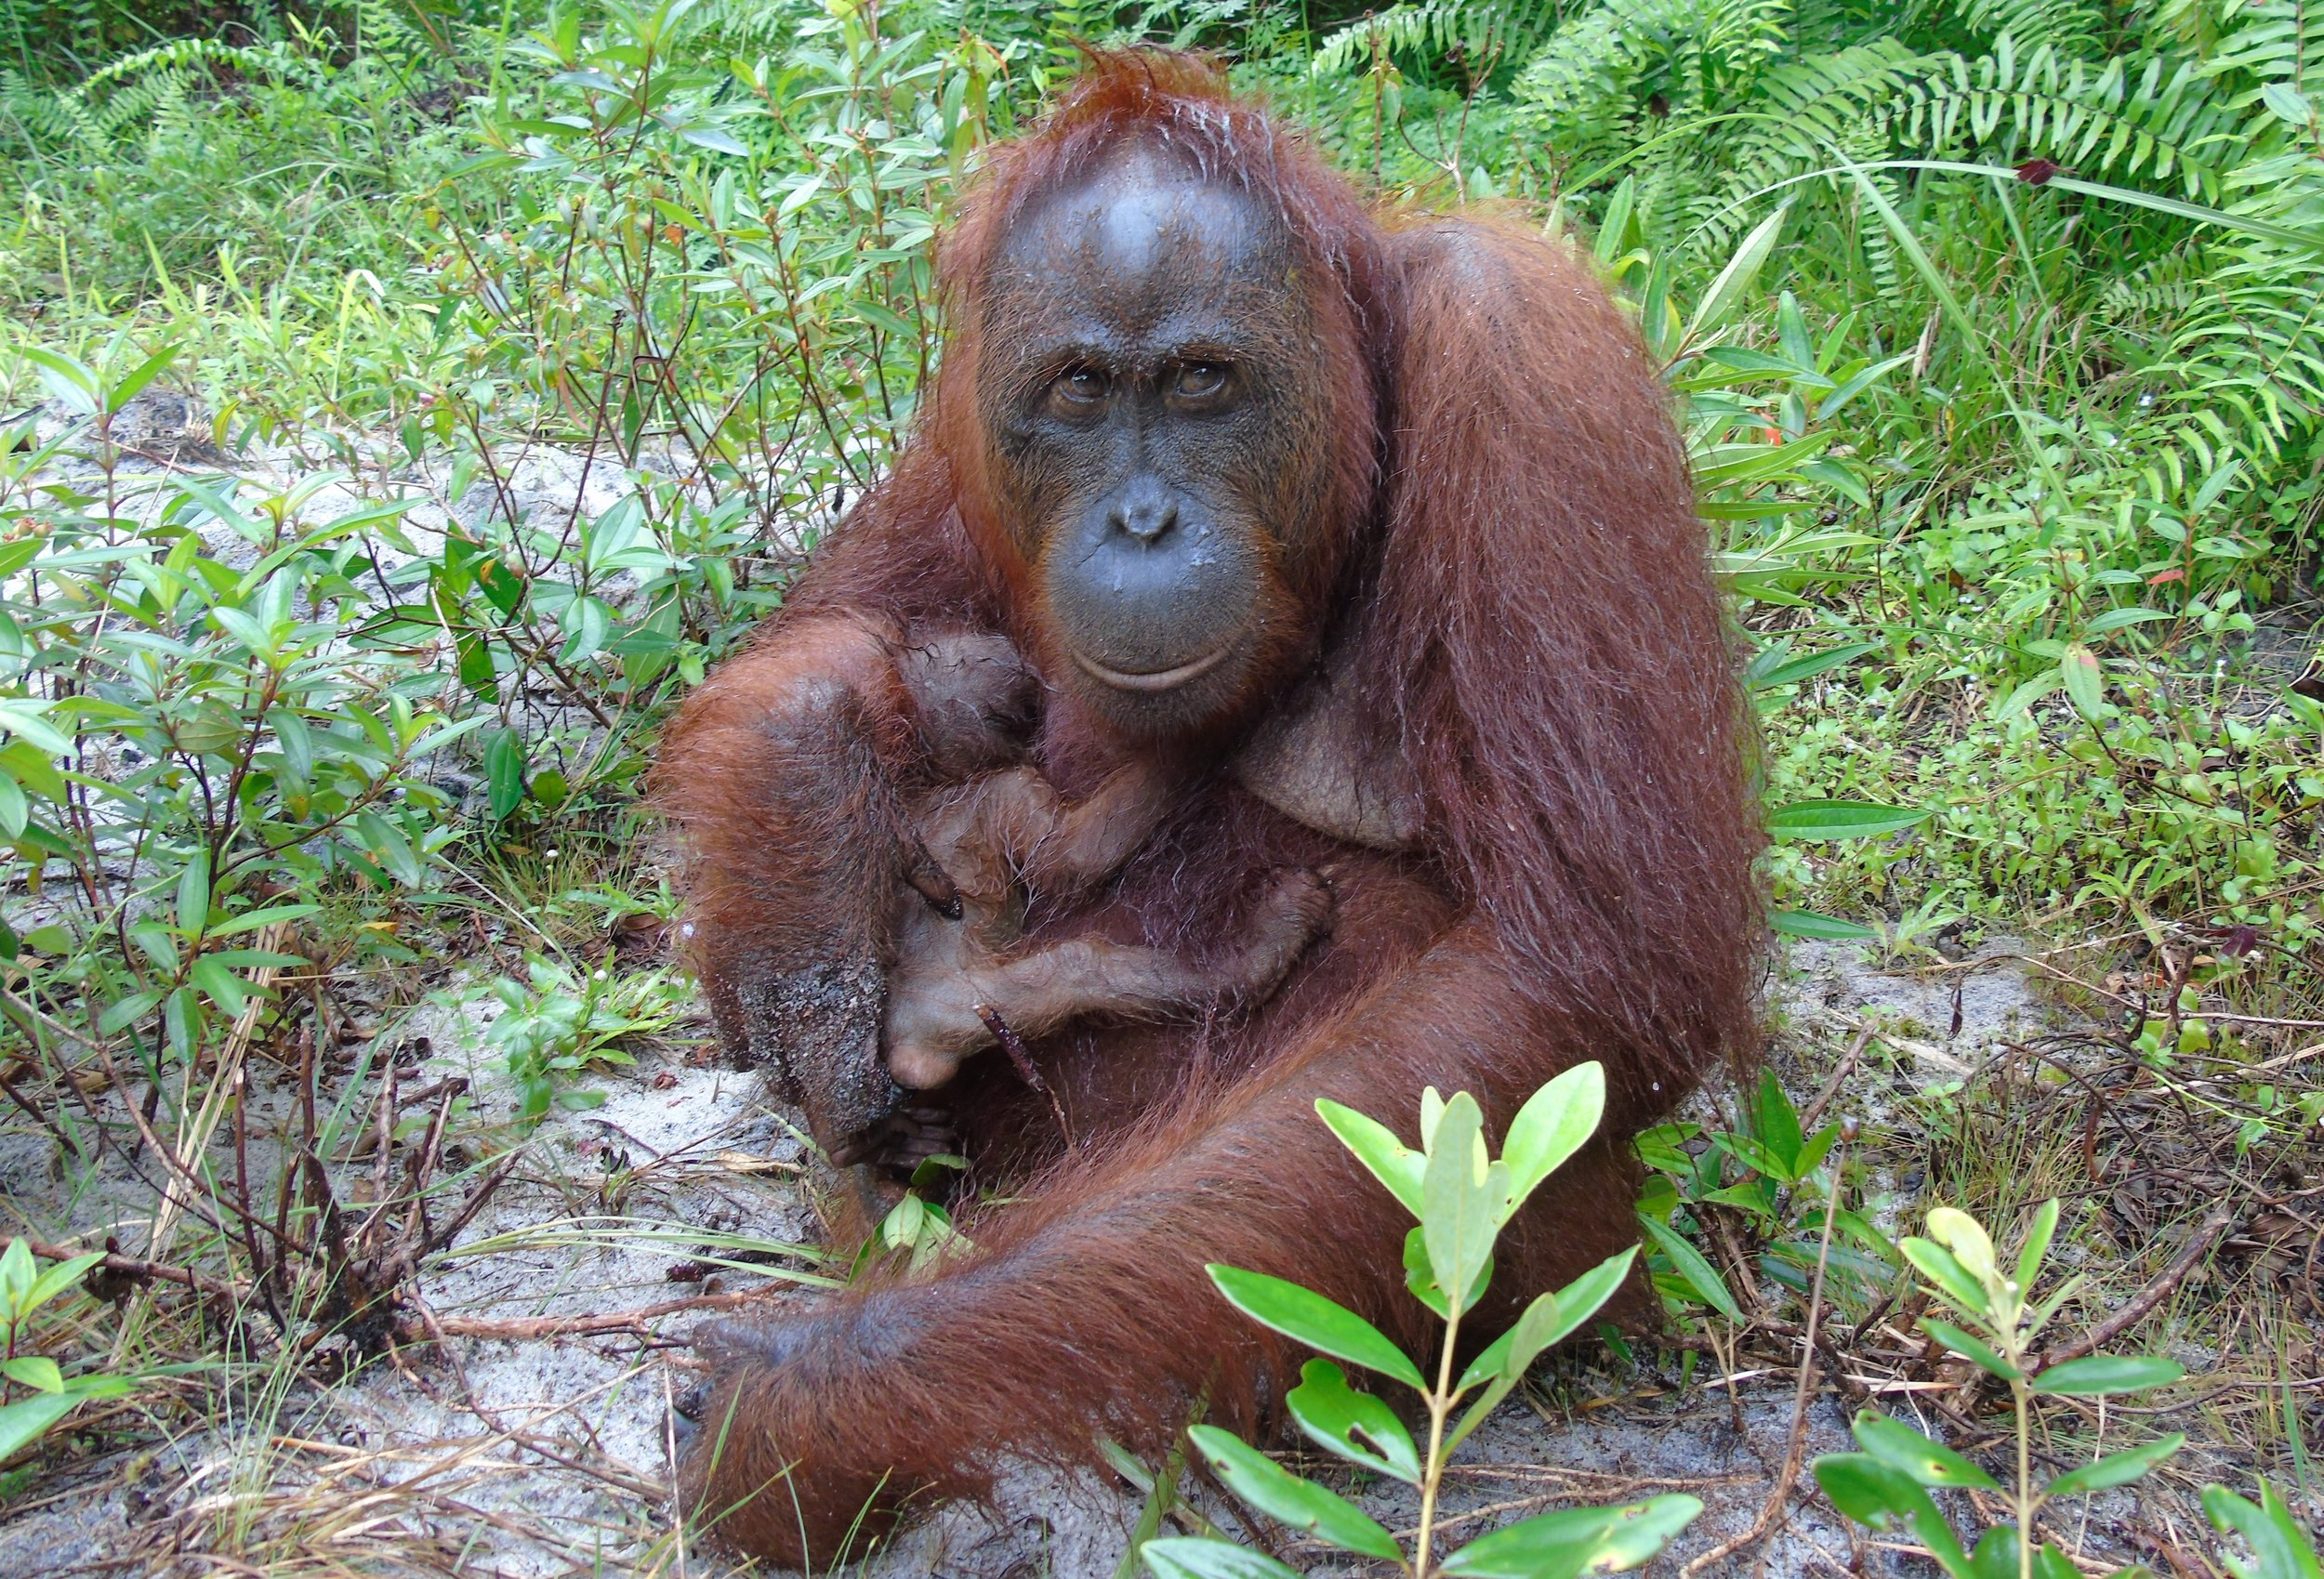 Mores will teach her daughter all she knows. It will take several years for her baby to be able to feed and move about the forest independently.  For more details, please read our    blog.